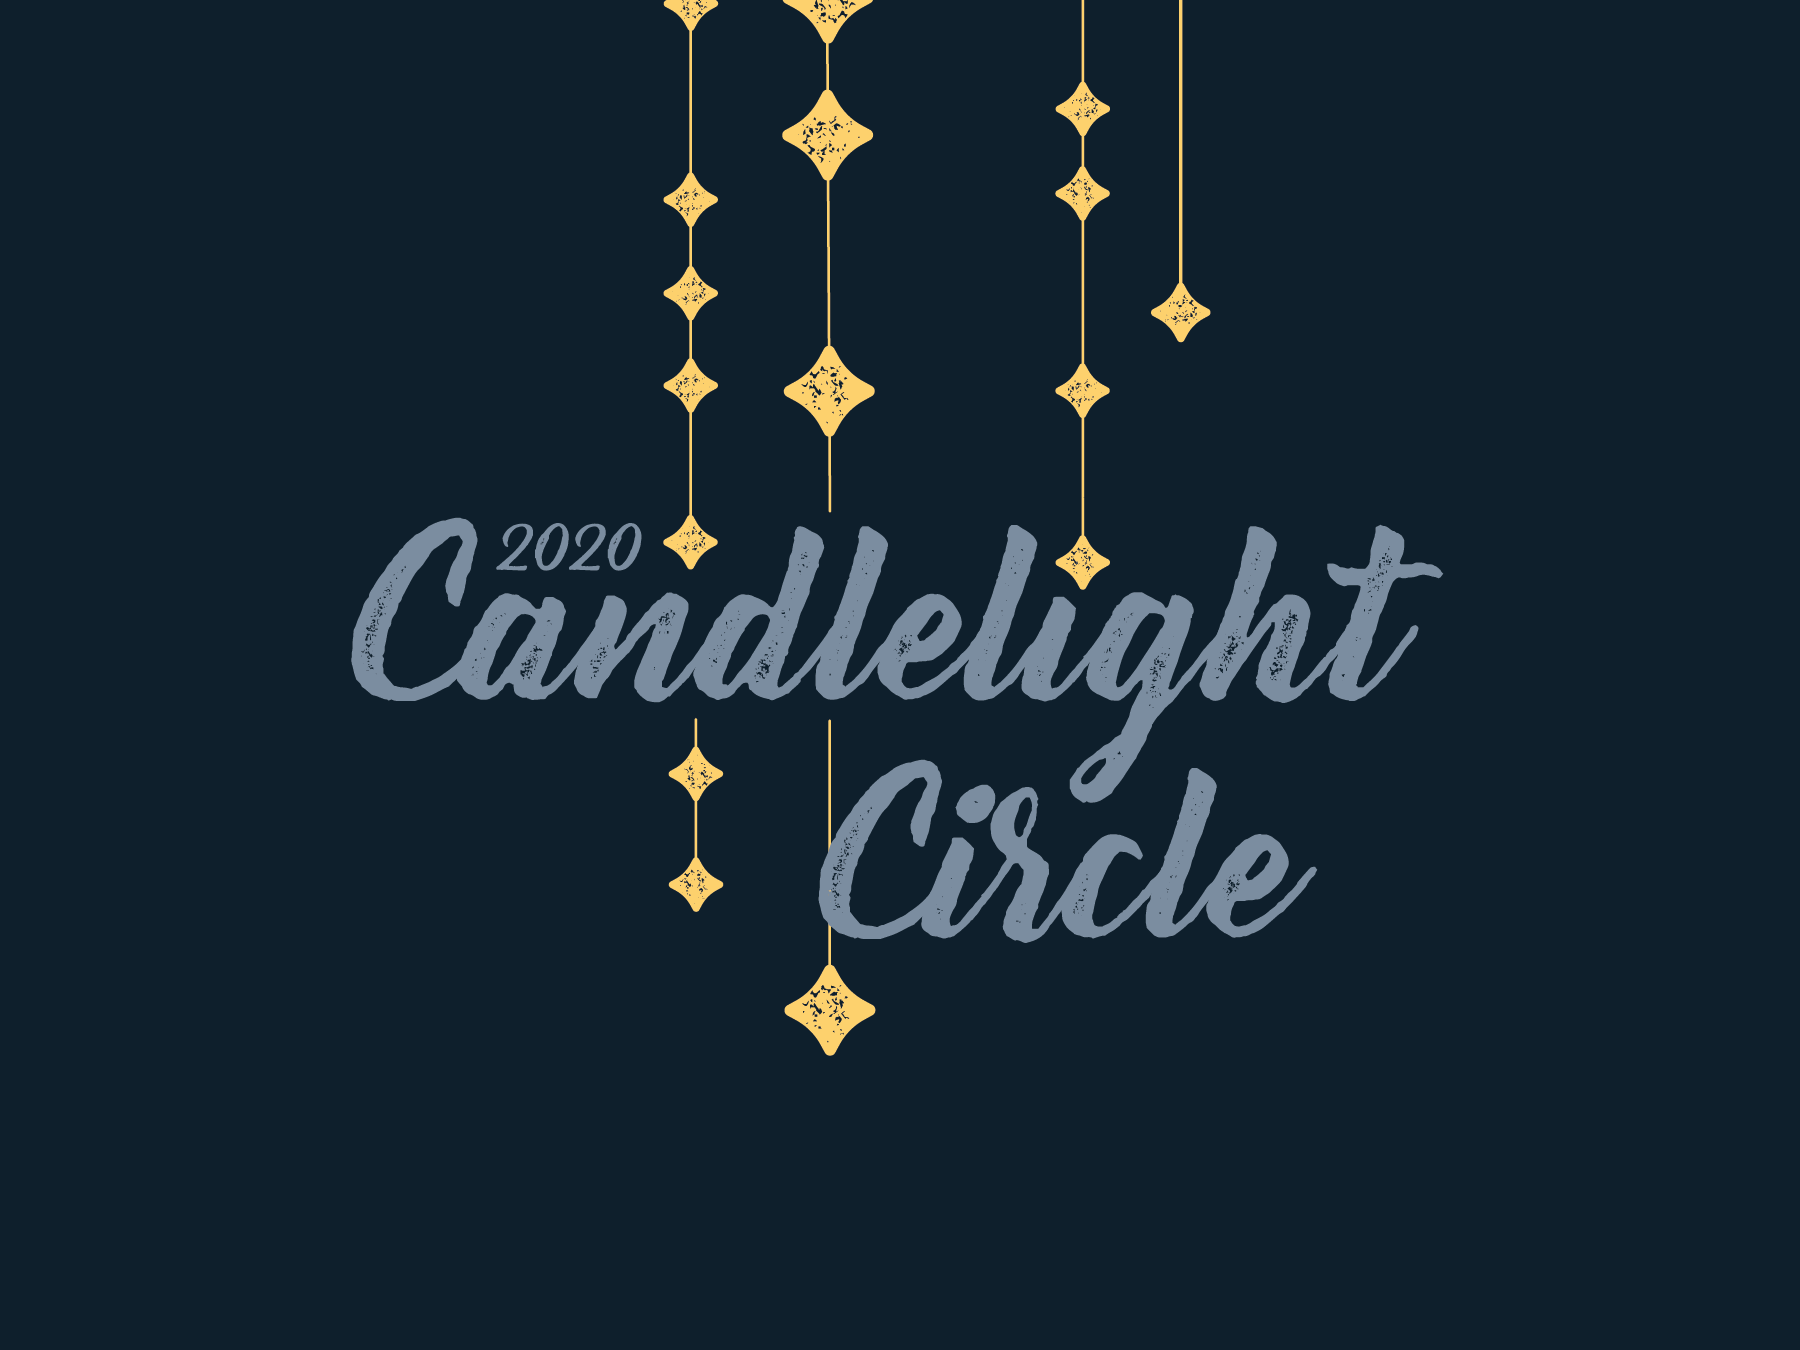 The Research Foundation offers opportunity to join Candlelight Circle Supporters